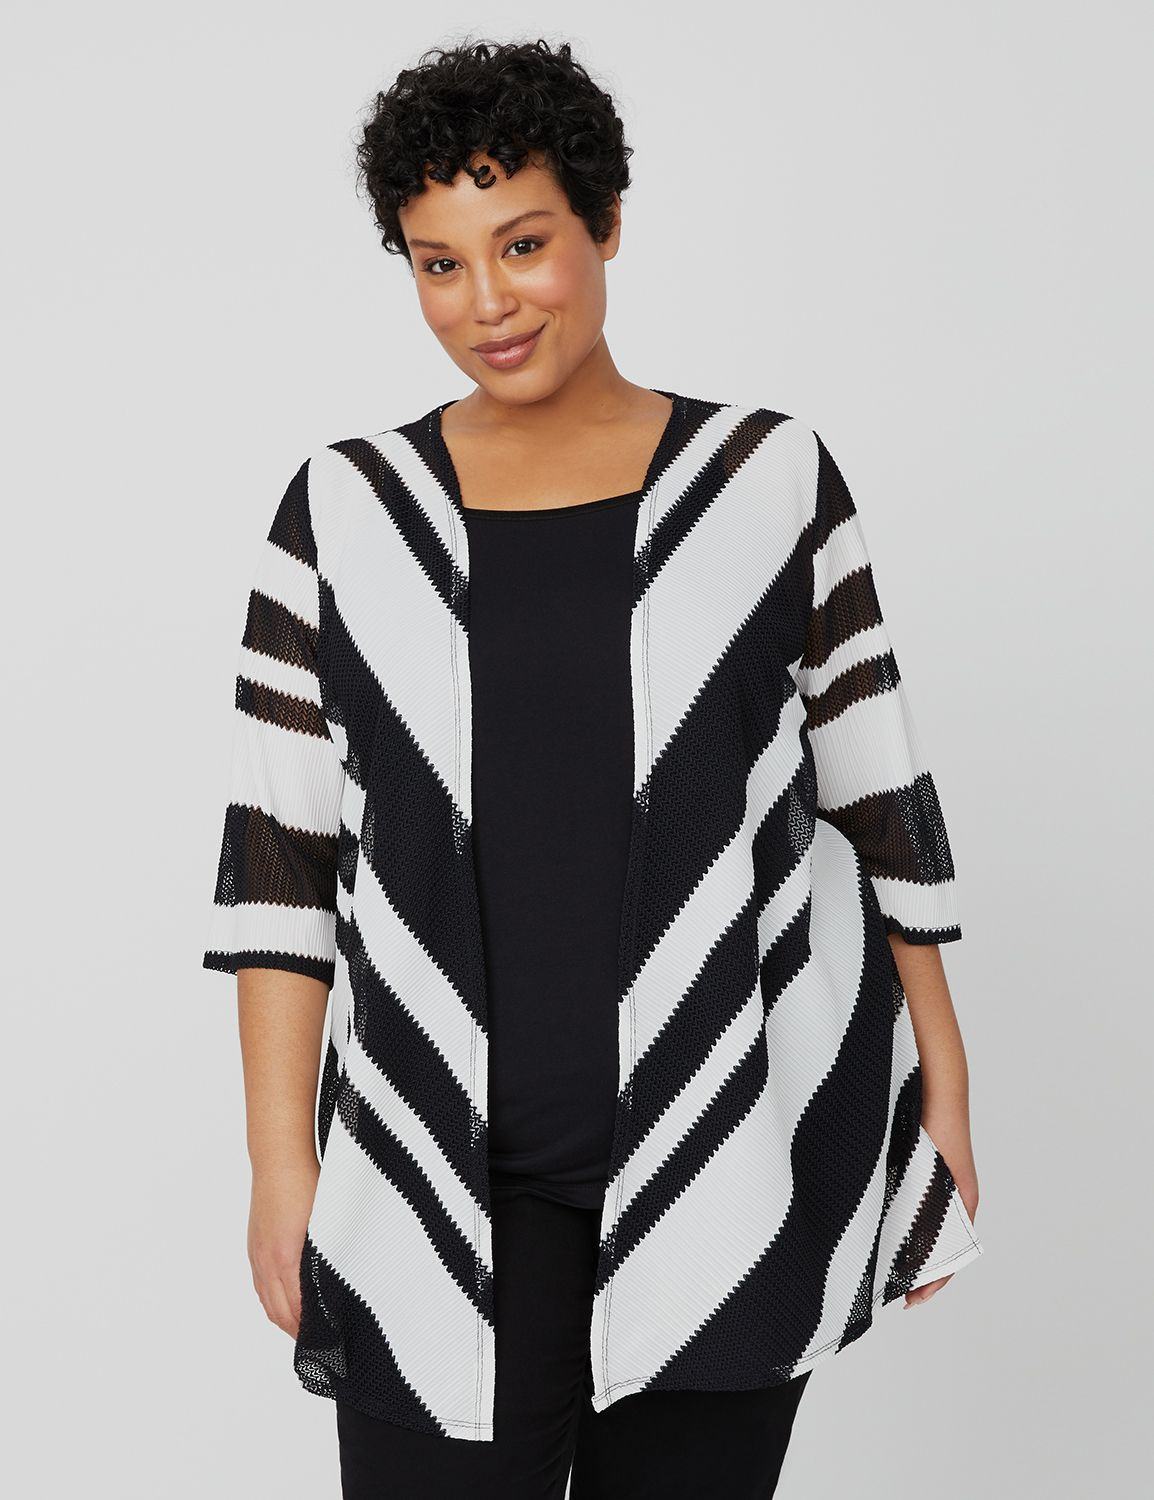 Cascading Herringbone Cardigan 1089908 BLK/WHT HERRINGBONE COLORBL MP-300099908